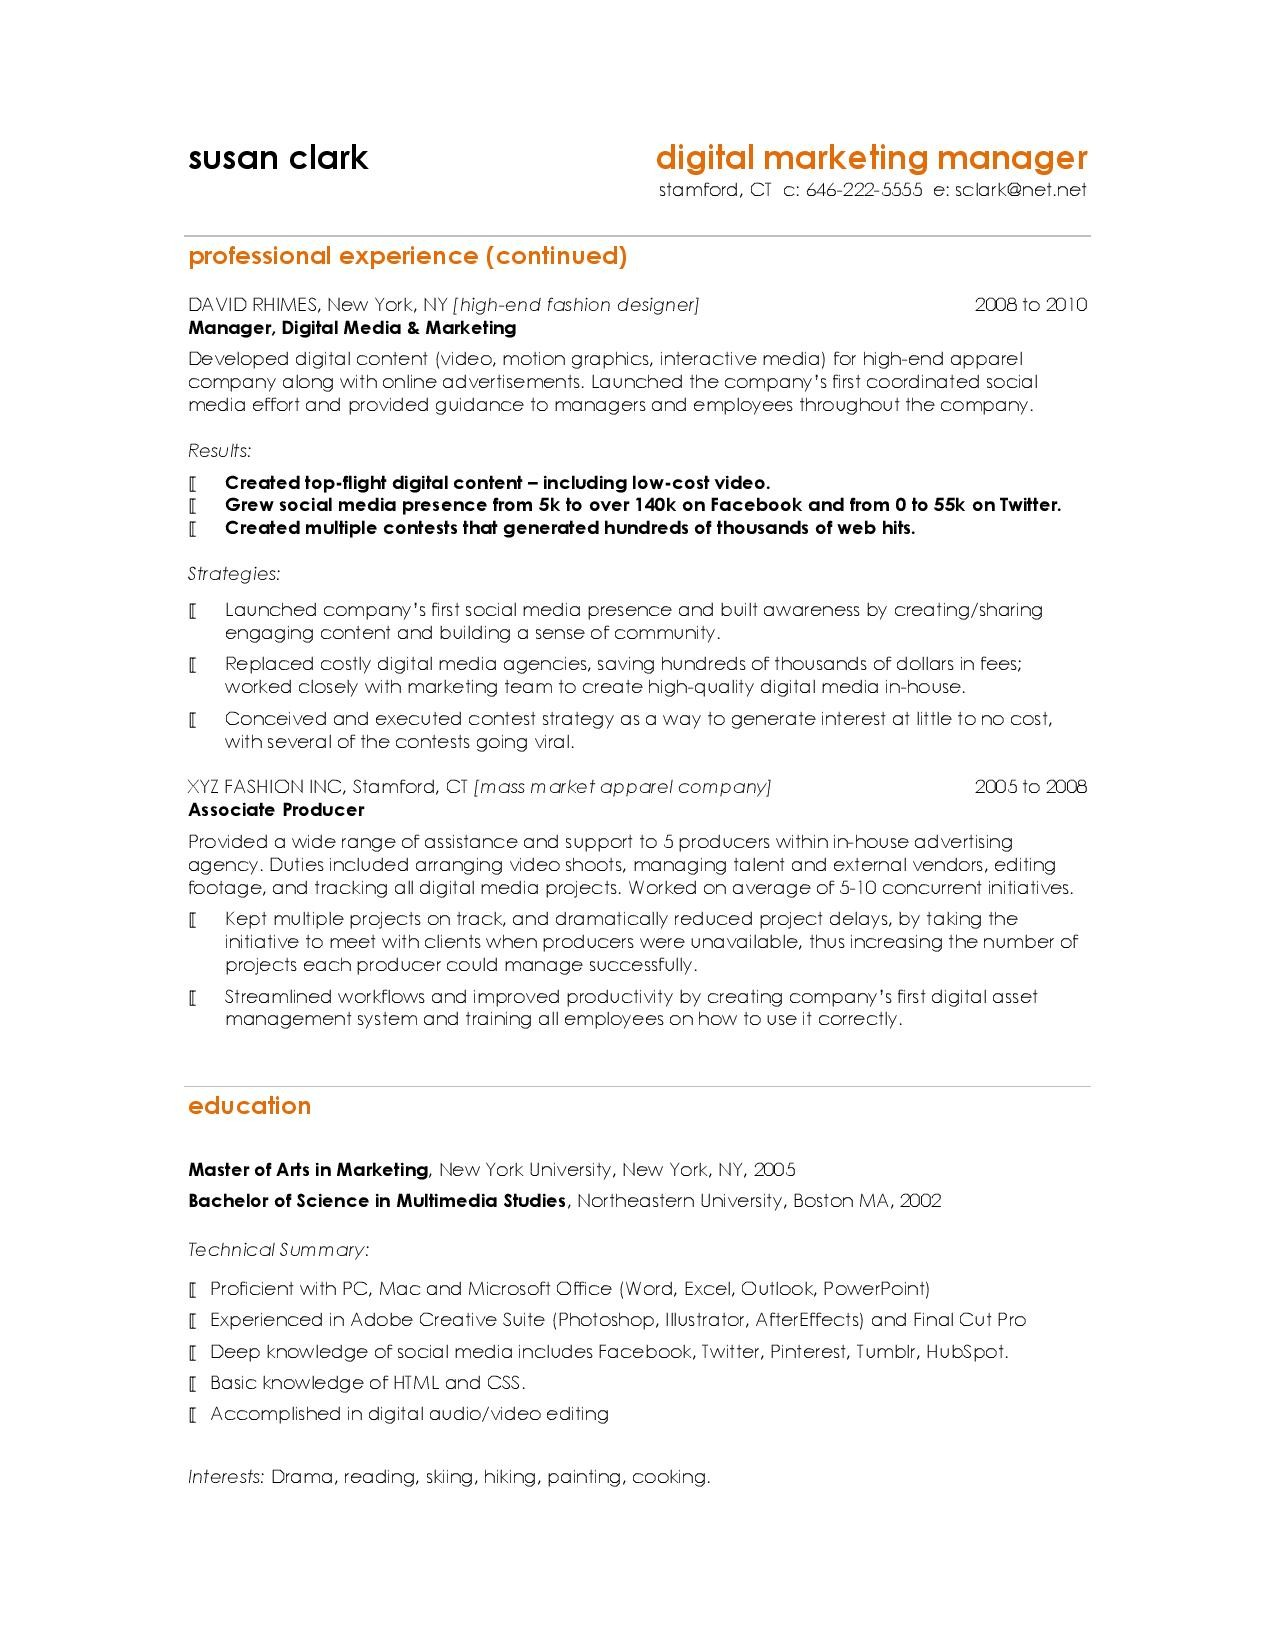 Content Marketing Template Unique 10 Resume Samples Hiring Managers Will Notice